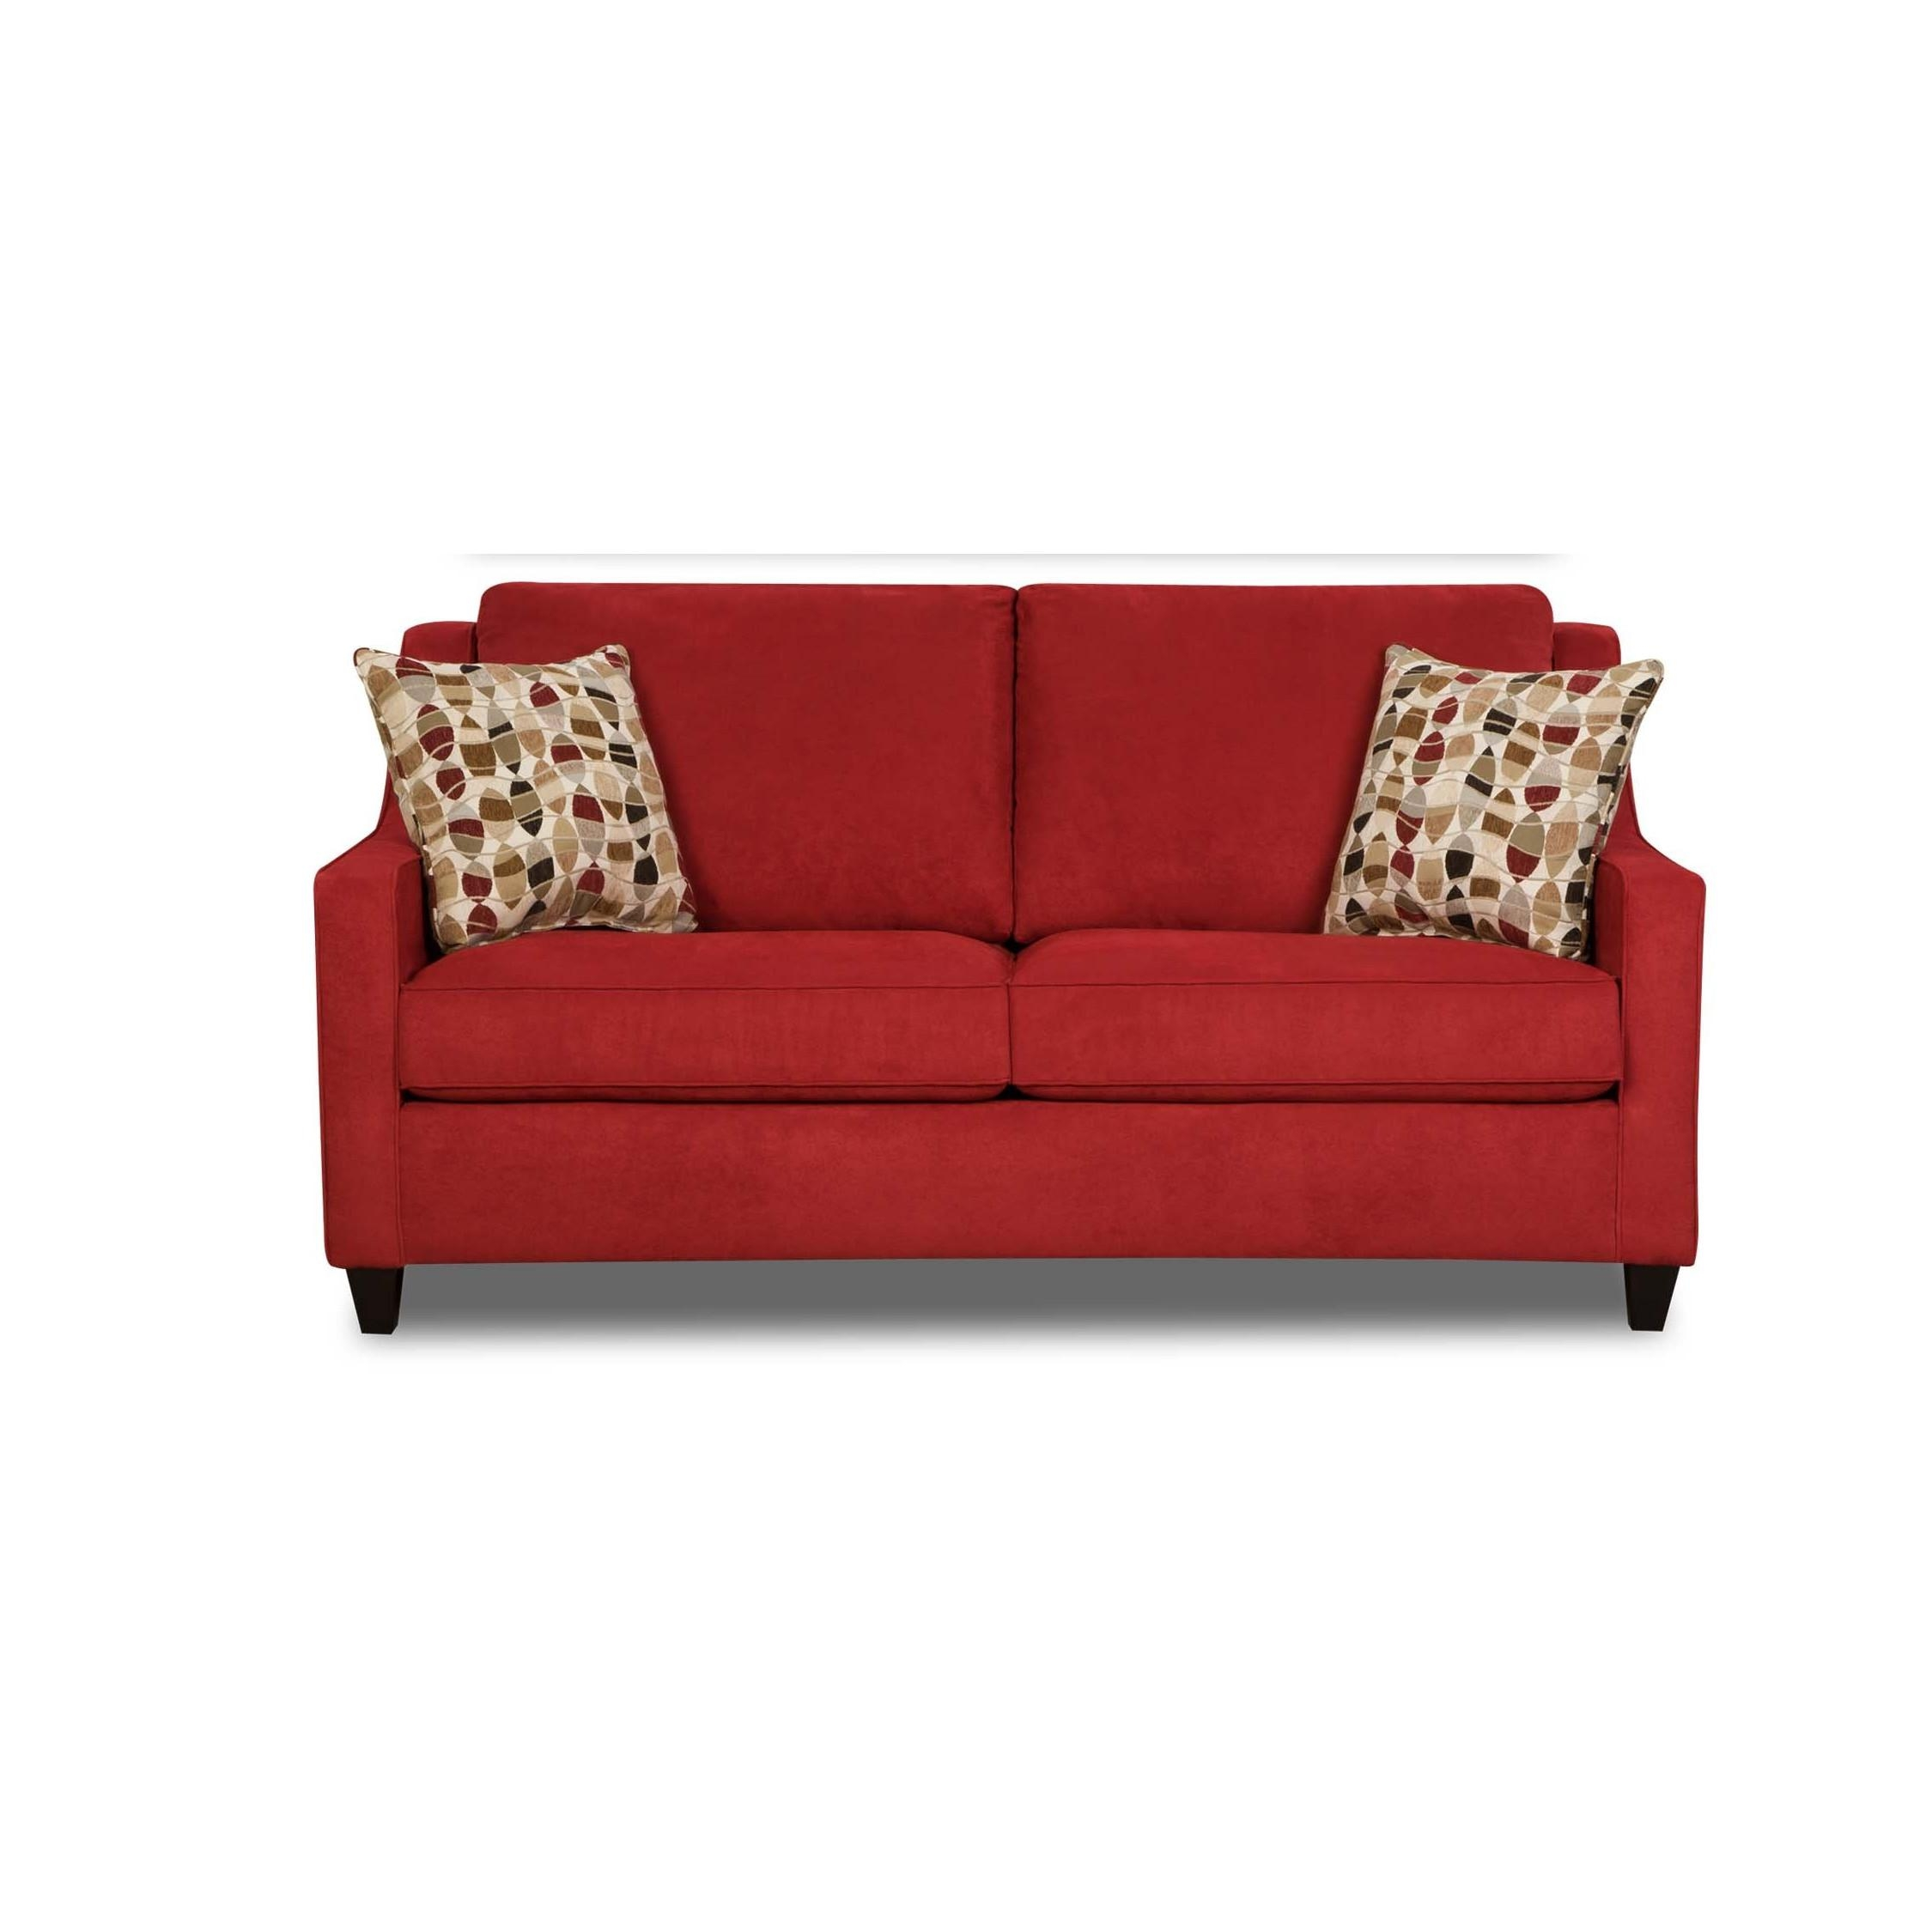 Furniture: Using Comfy Simmons Sleeper Sofa For Home Furniture For Simmons Sleeper Sofas (Image 4 of 20)